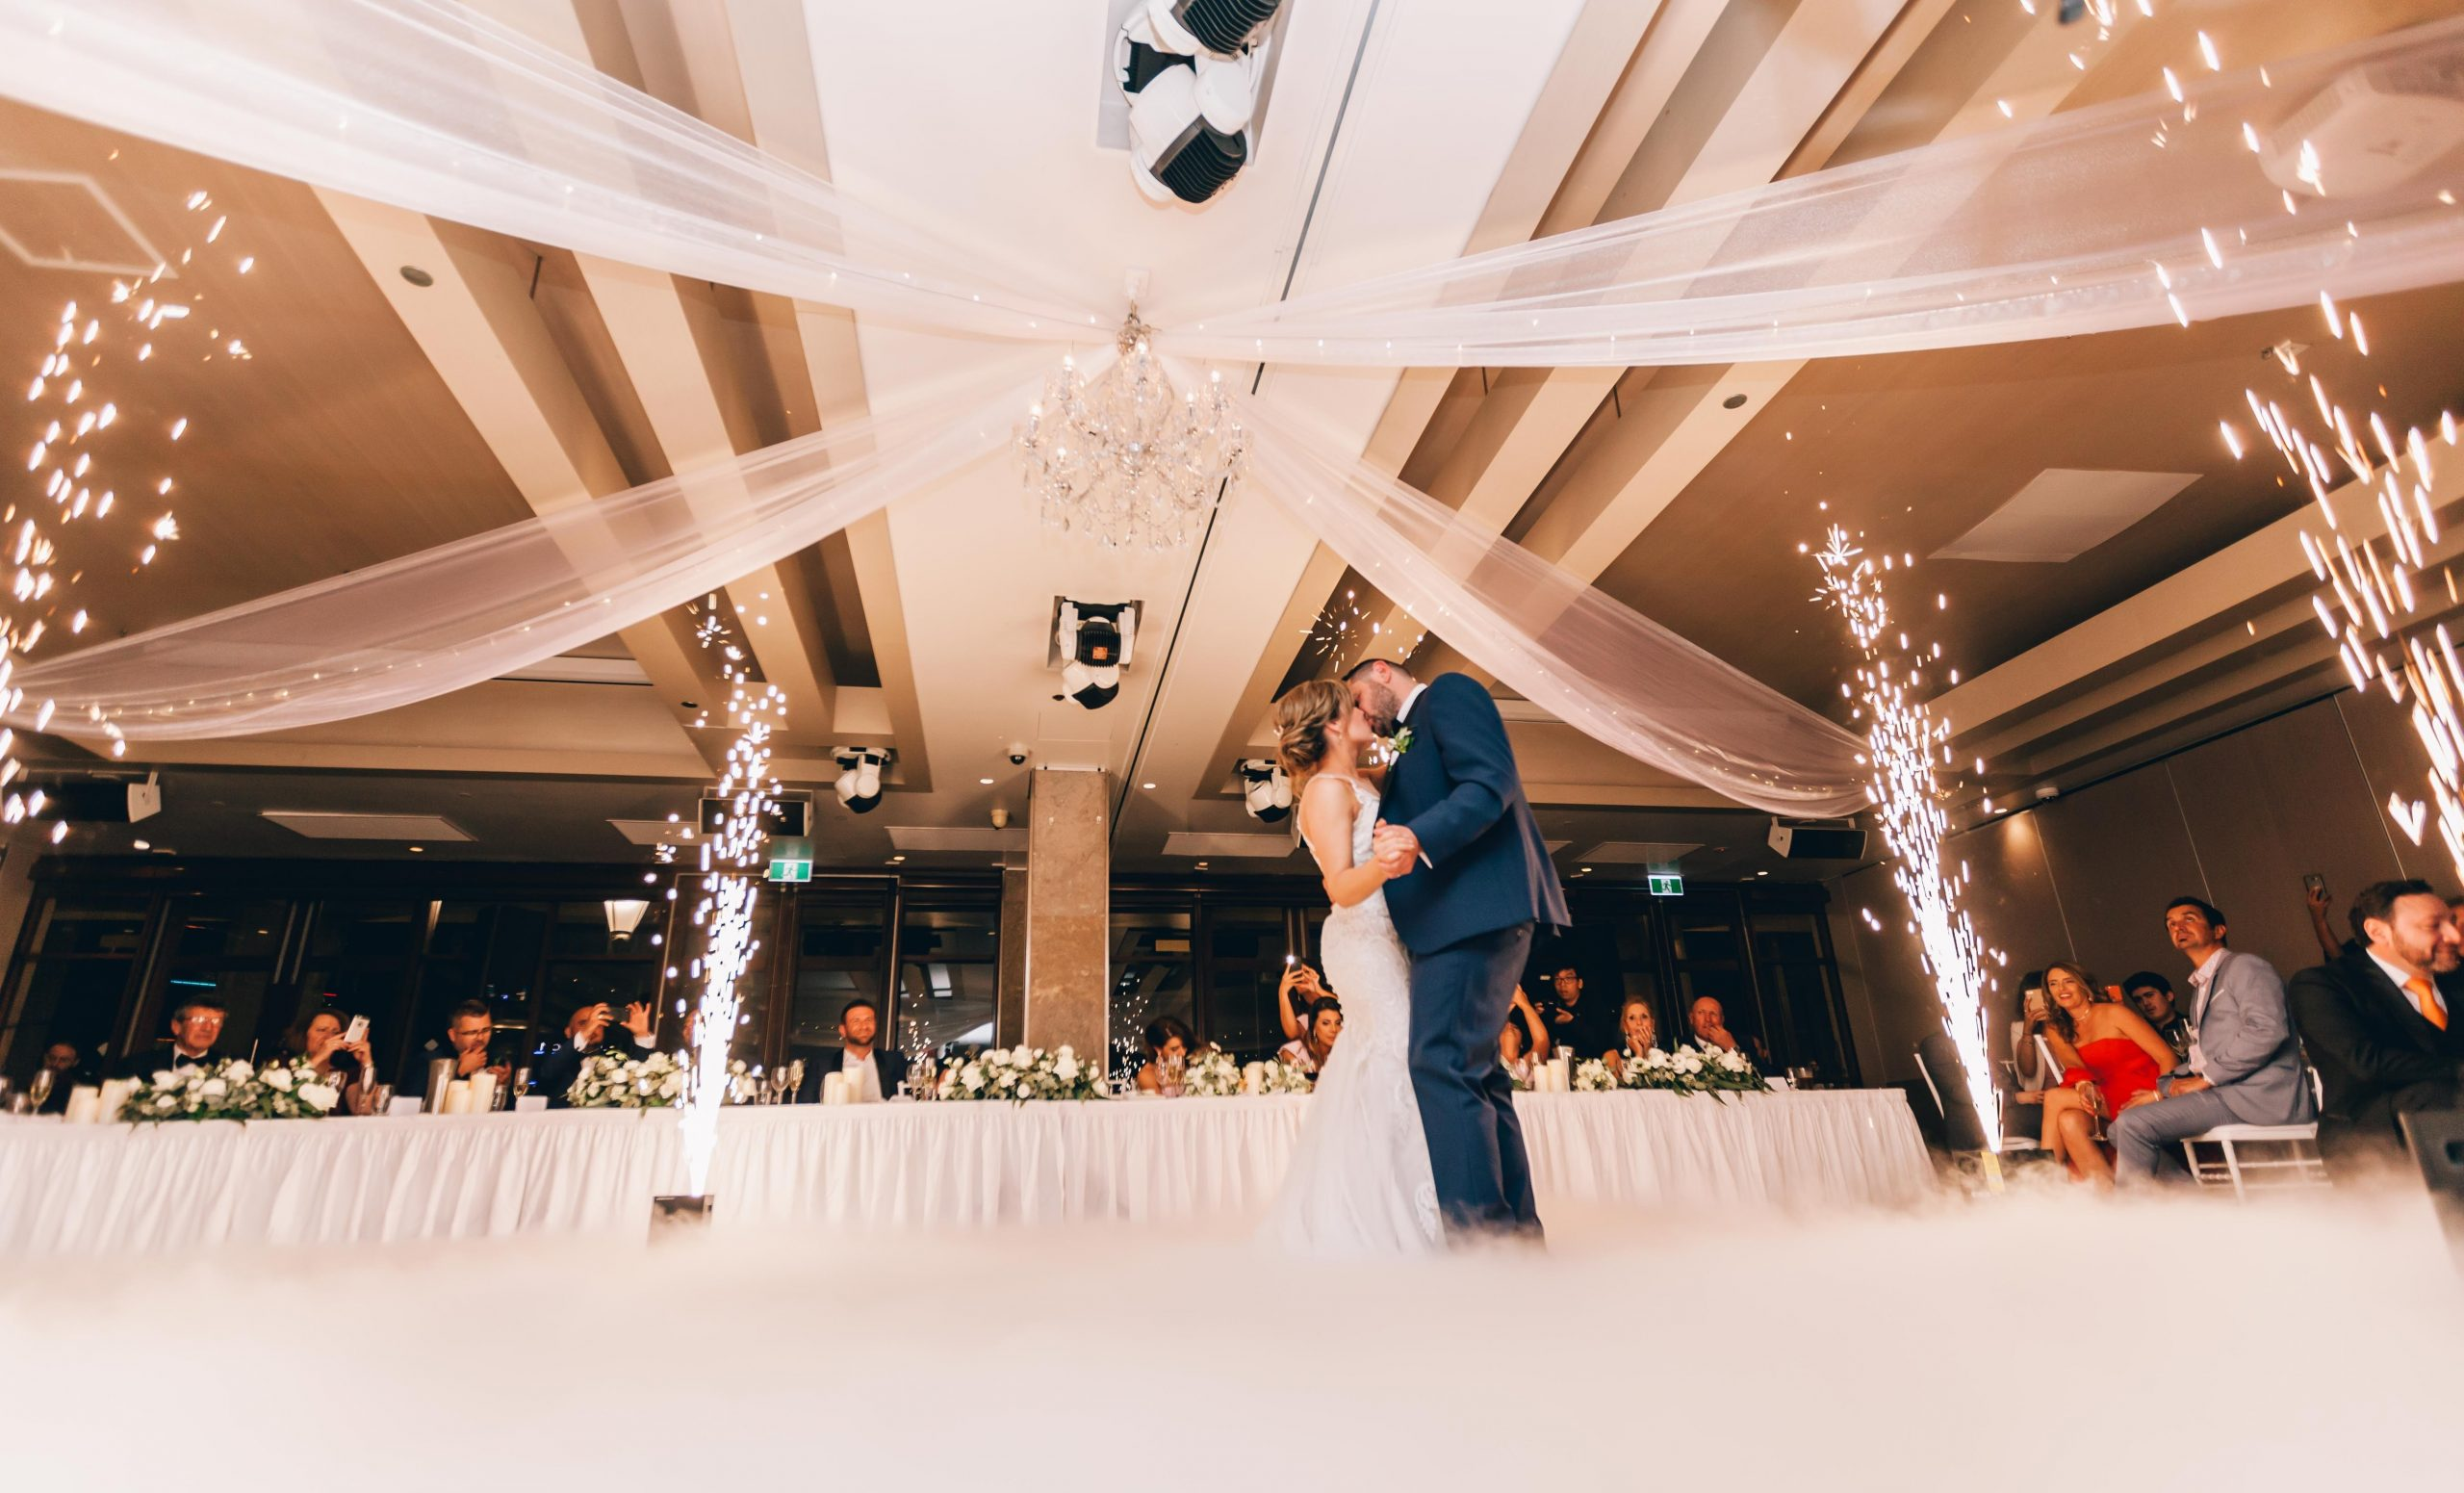 low-angle-photography-of-bride-and-groom-dancing-3082764